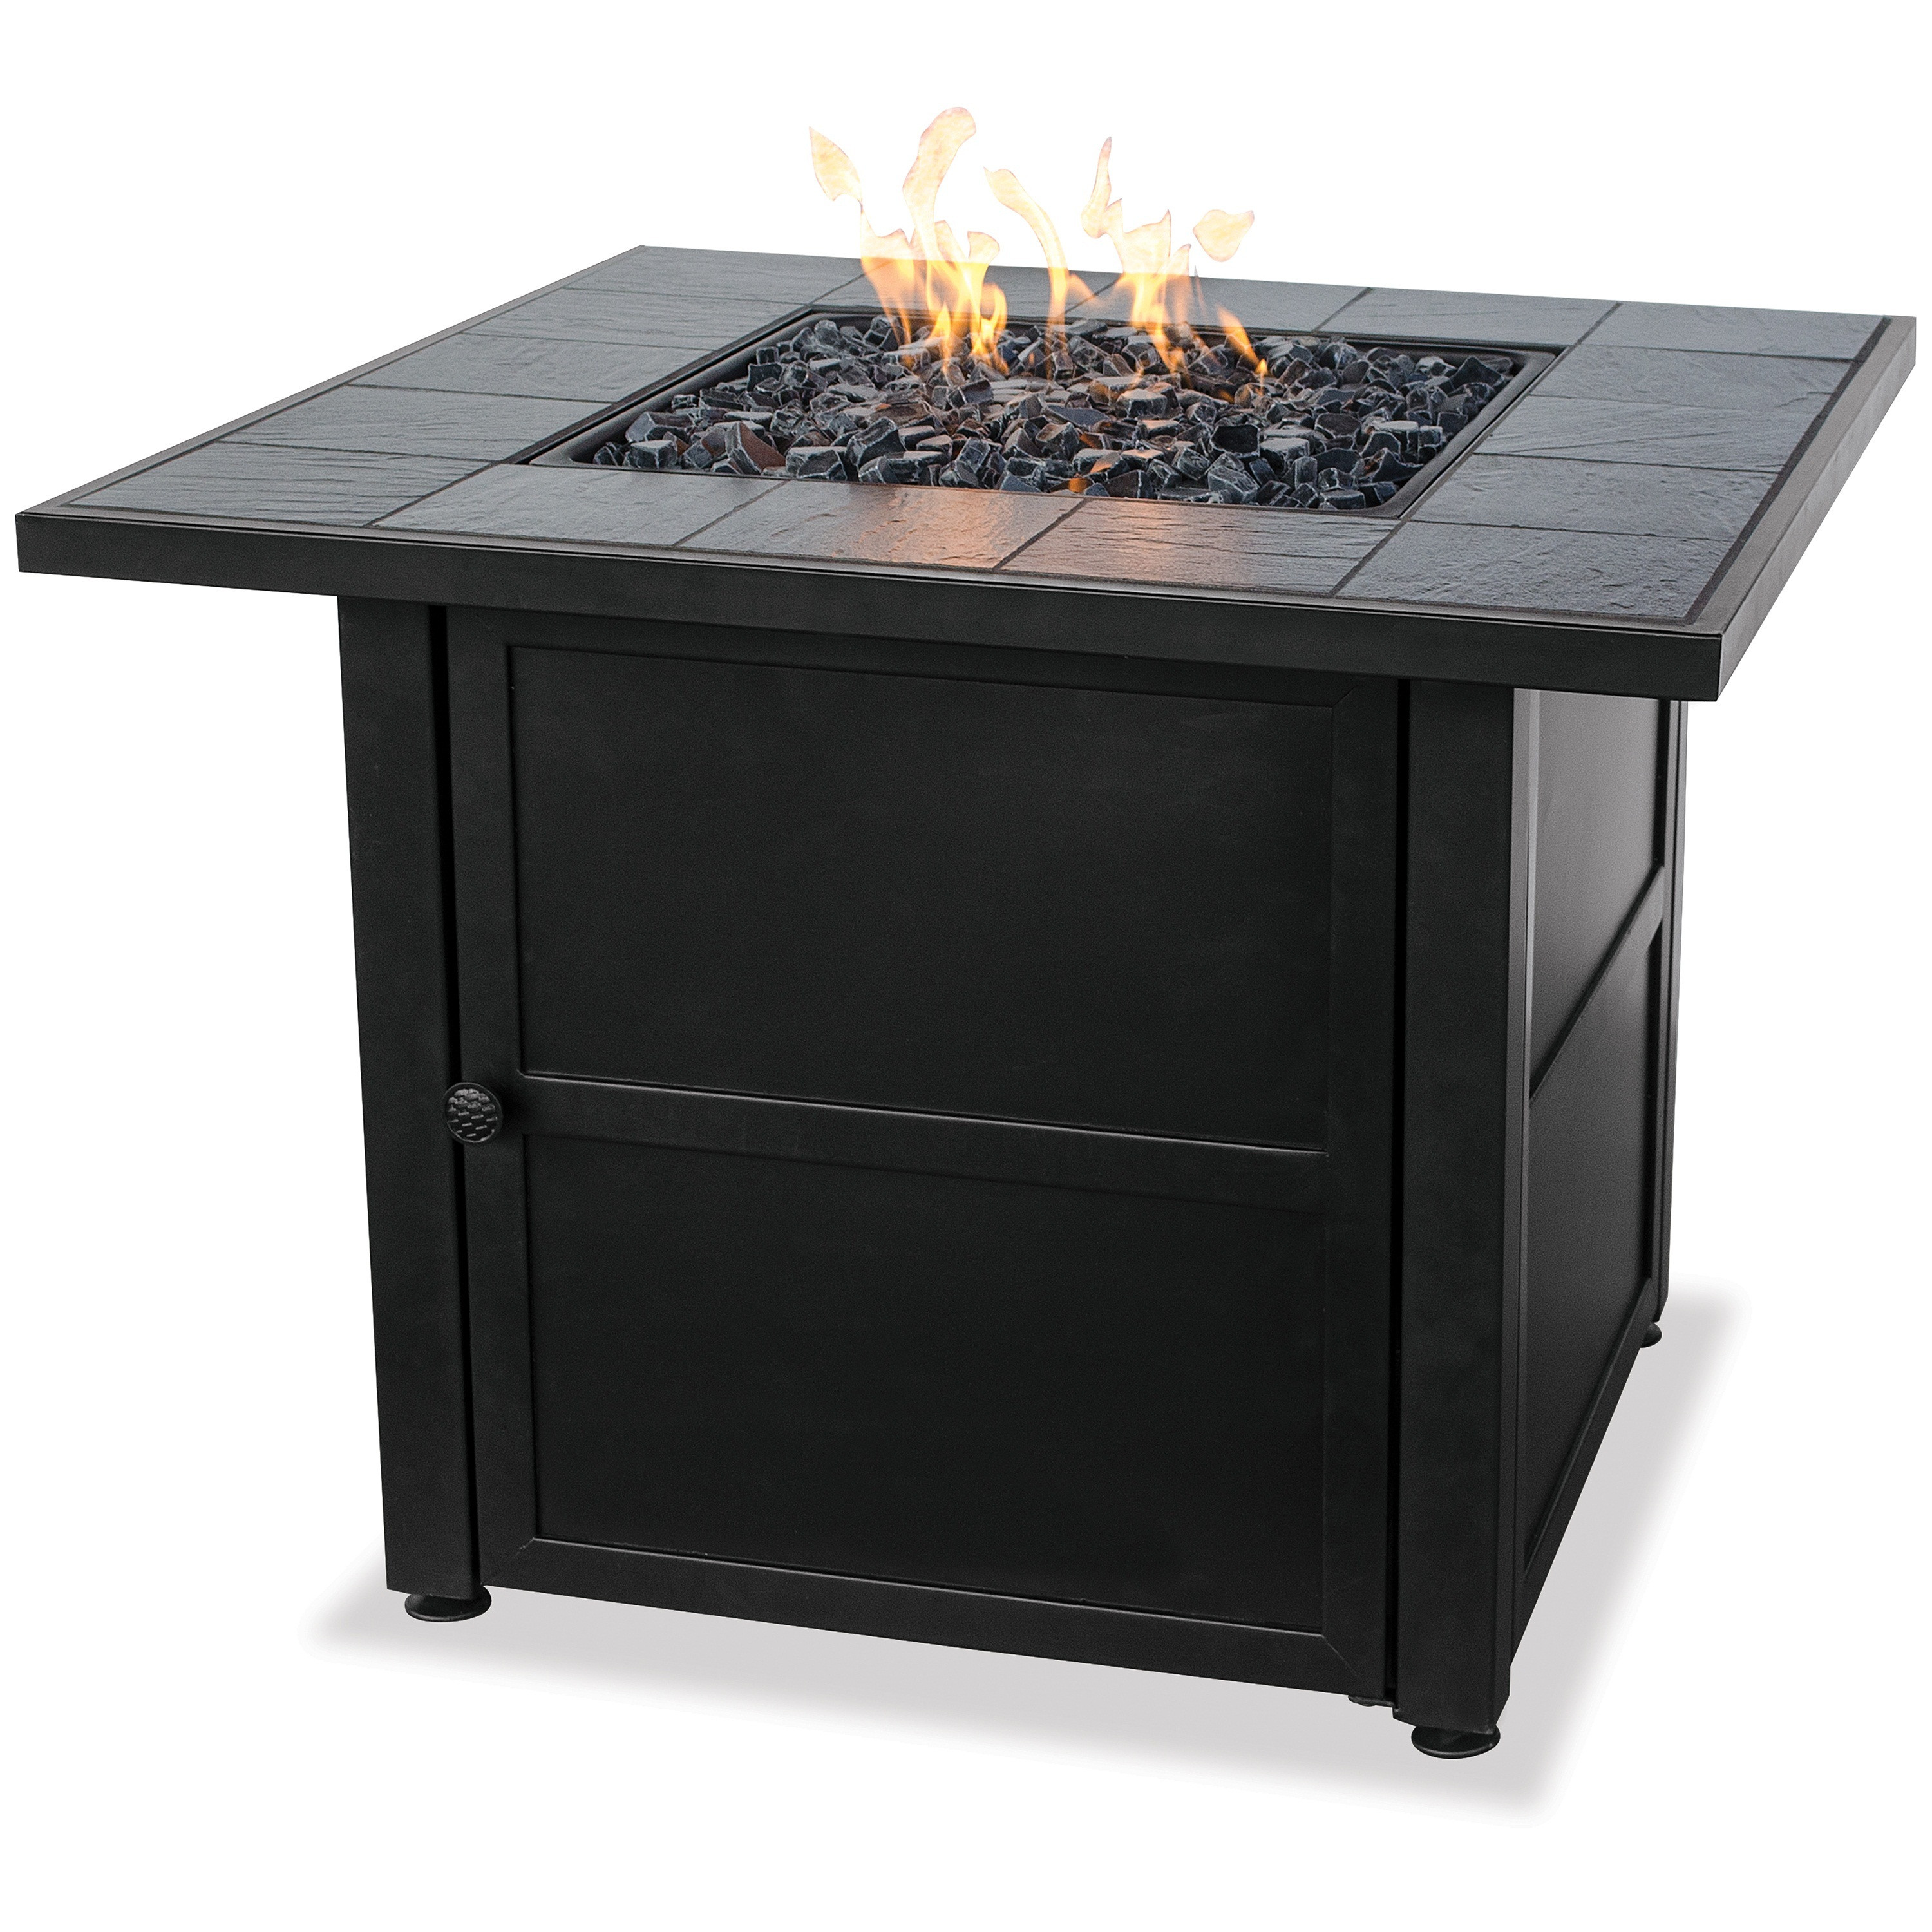 Chic Uniflame Ceramic Tile LP Gas Fire Pit Table propane patio fireplace